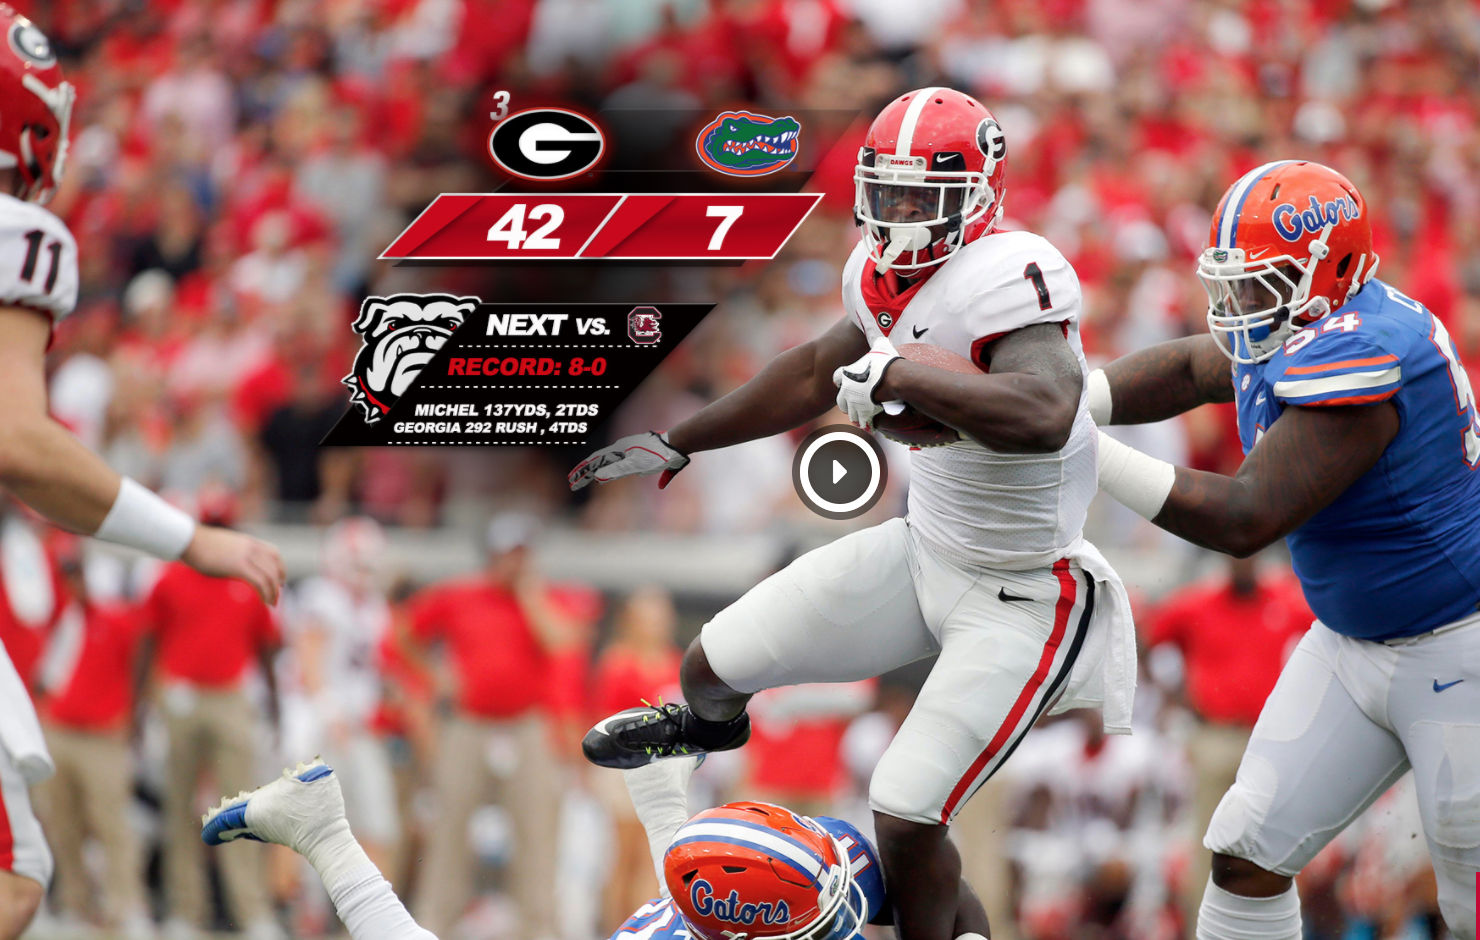 Georgia Rushes Out To 42 7 Victory Over Florida Uga Today